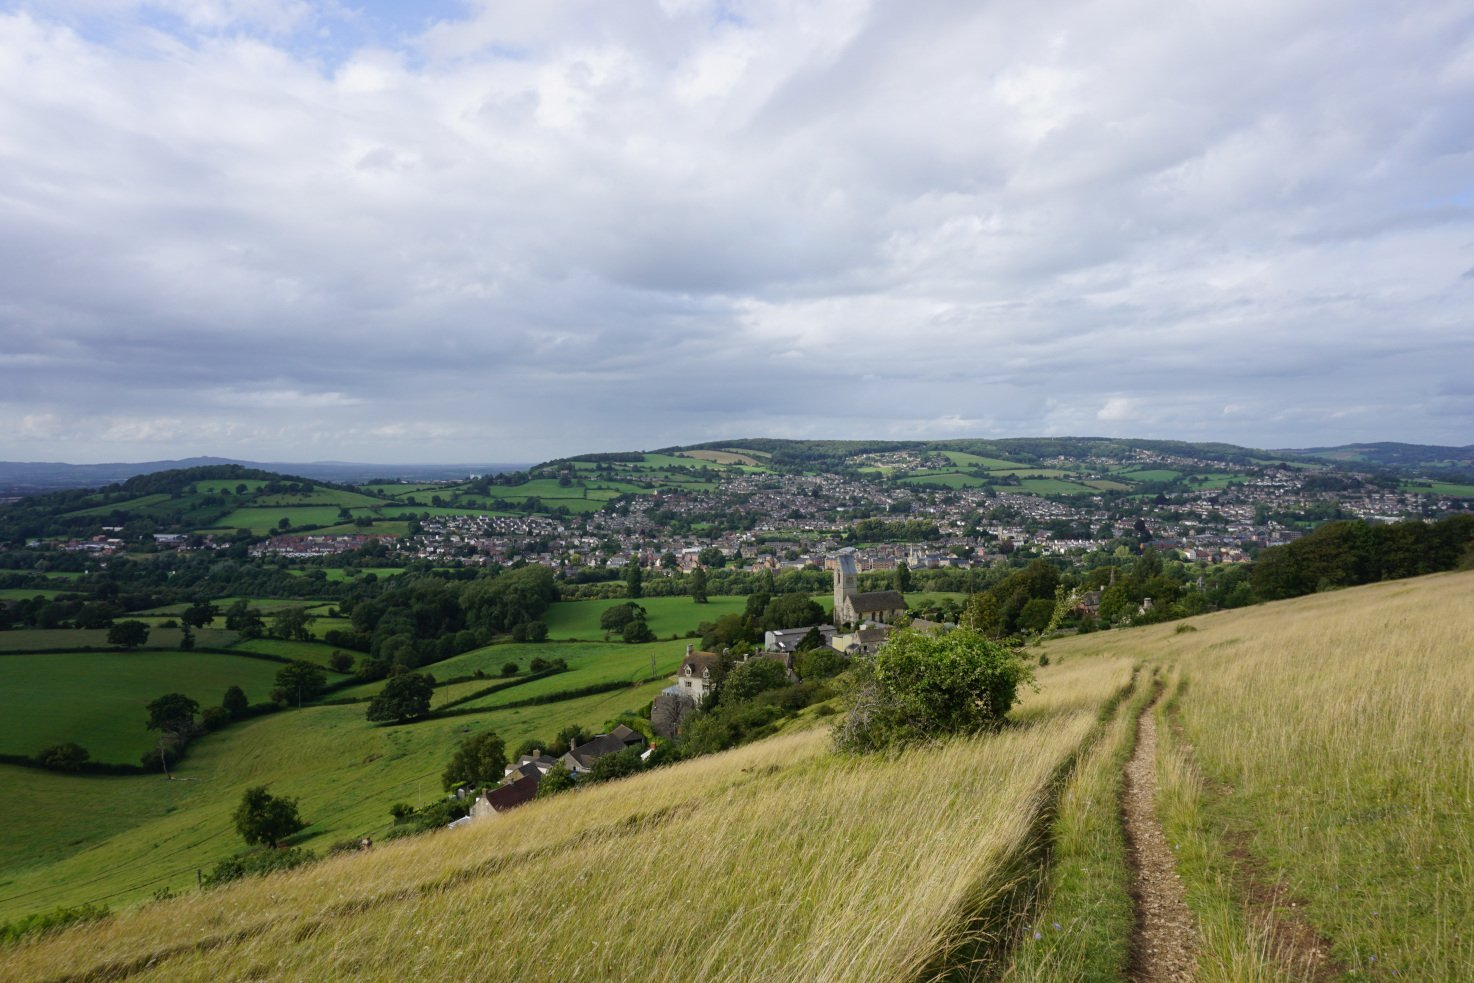 Great views of the Stroud valley while walking along the Cotswold Way in Selsley Common